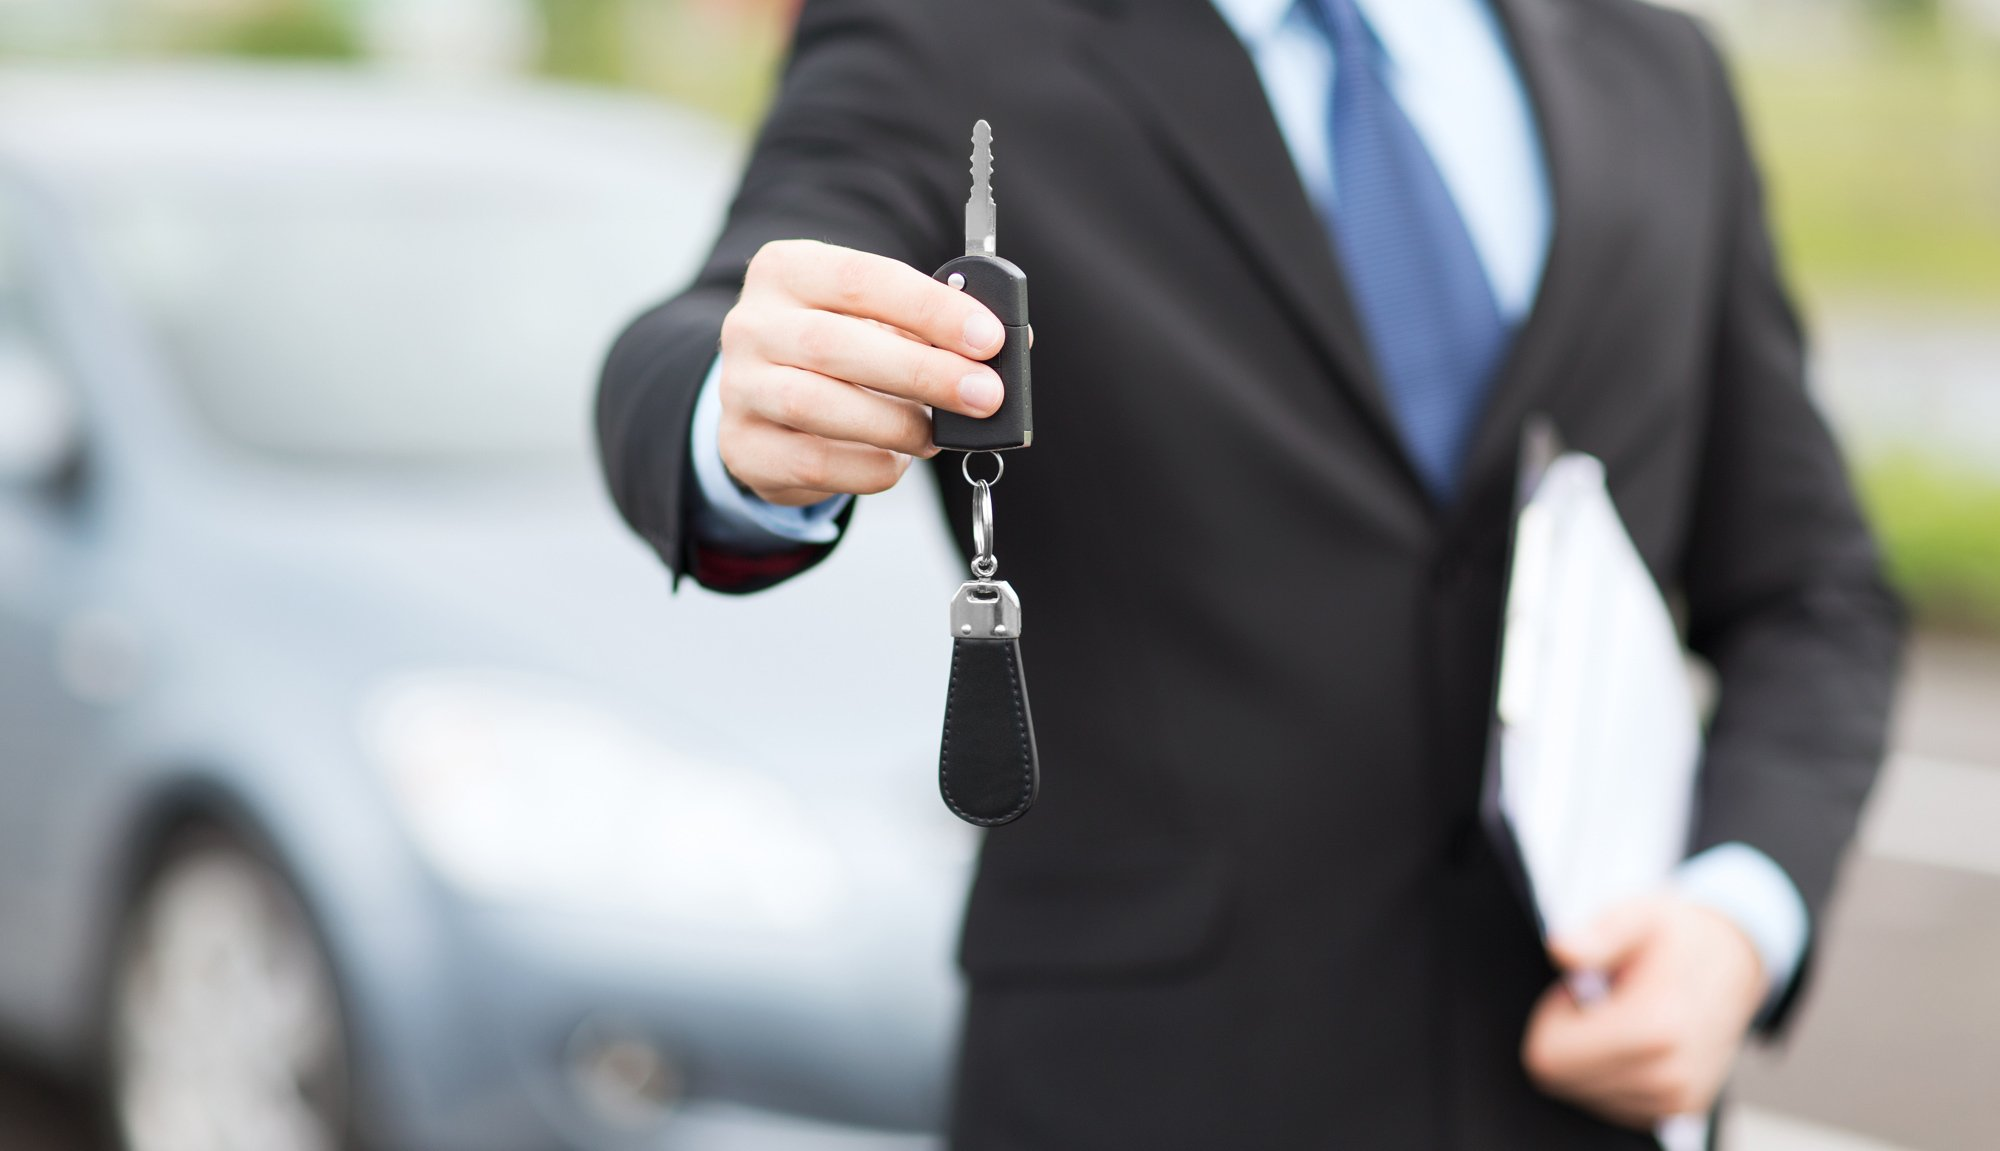 Car dealer handling key of car after approving auto loans in Richmond